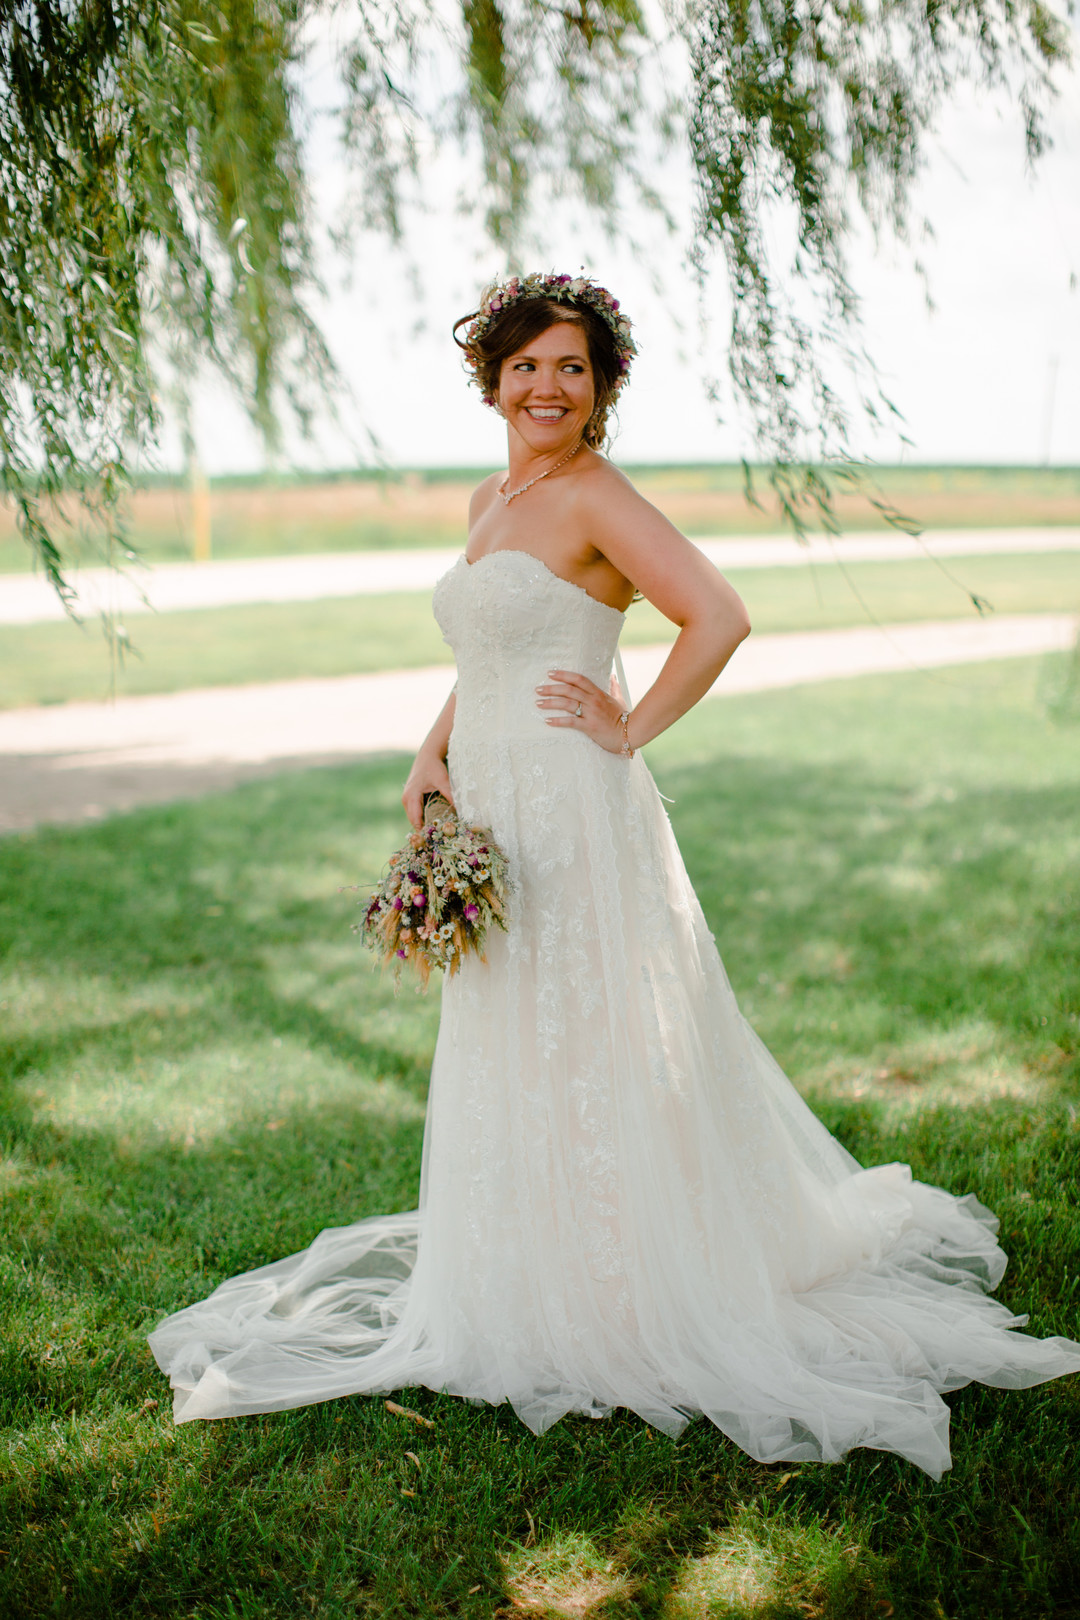 Bridal portrait: Rustic country wedding in Minooka, IL captured by Katie Brsan Photography. Visit CHItheeWED.com for more wedding inspiration!